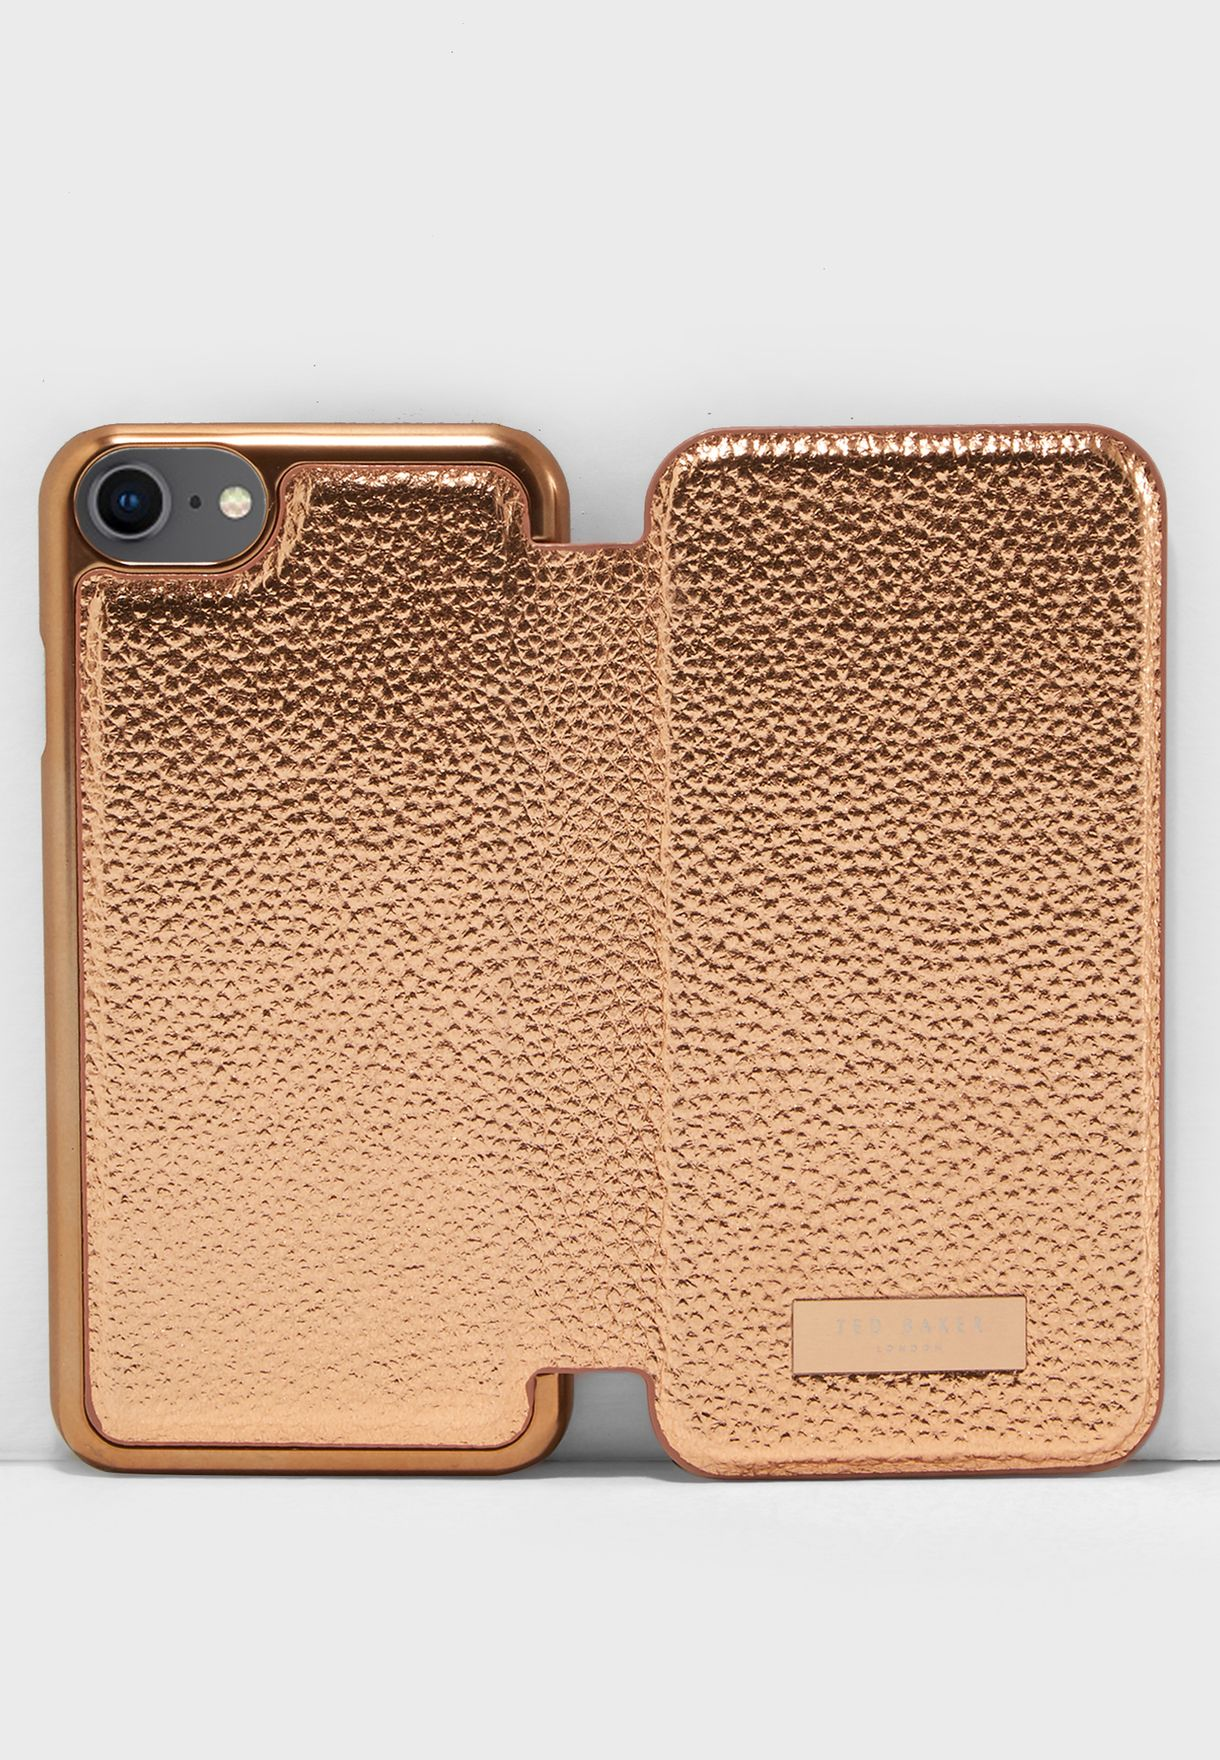 4449260dc Shop Ted baker gold Cedar Textured Case for iPhone 6 7 8 141115 for ...